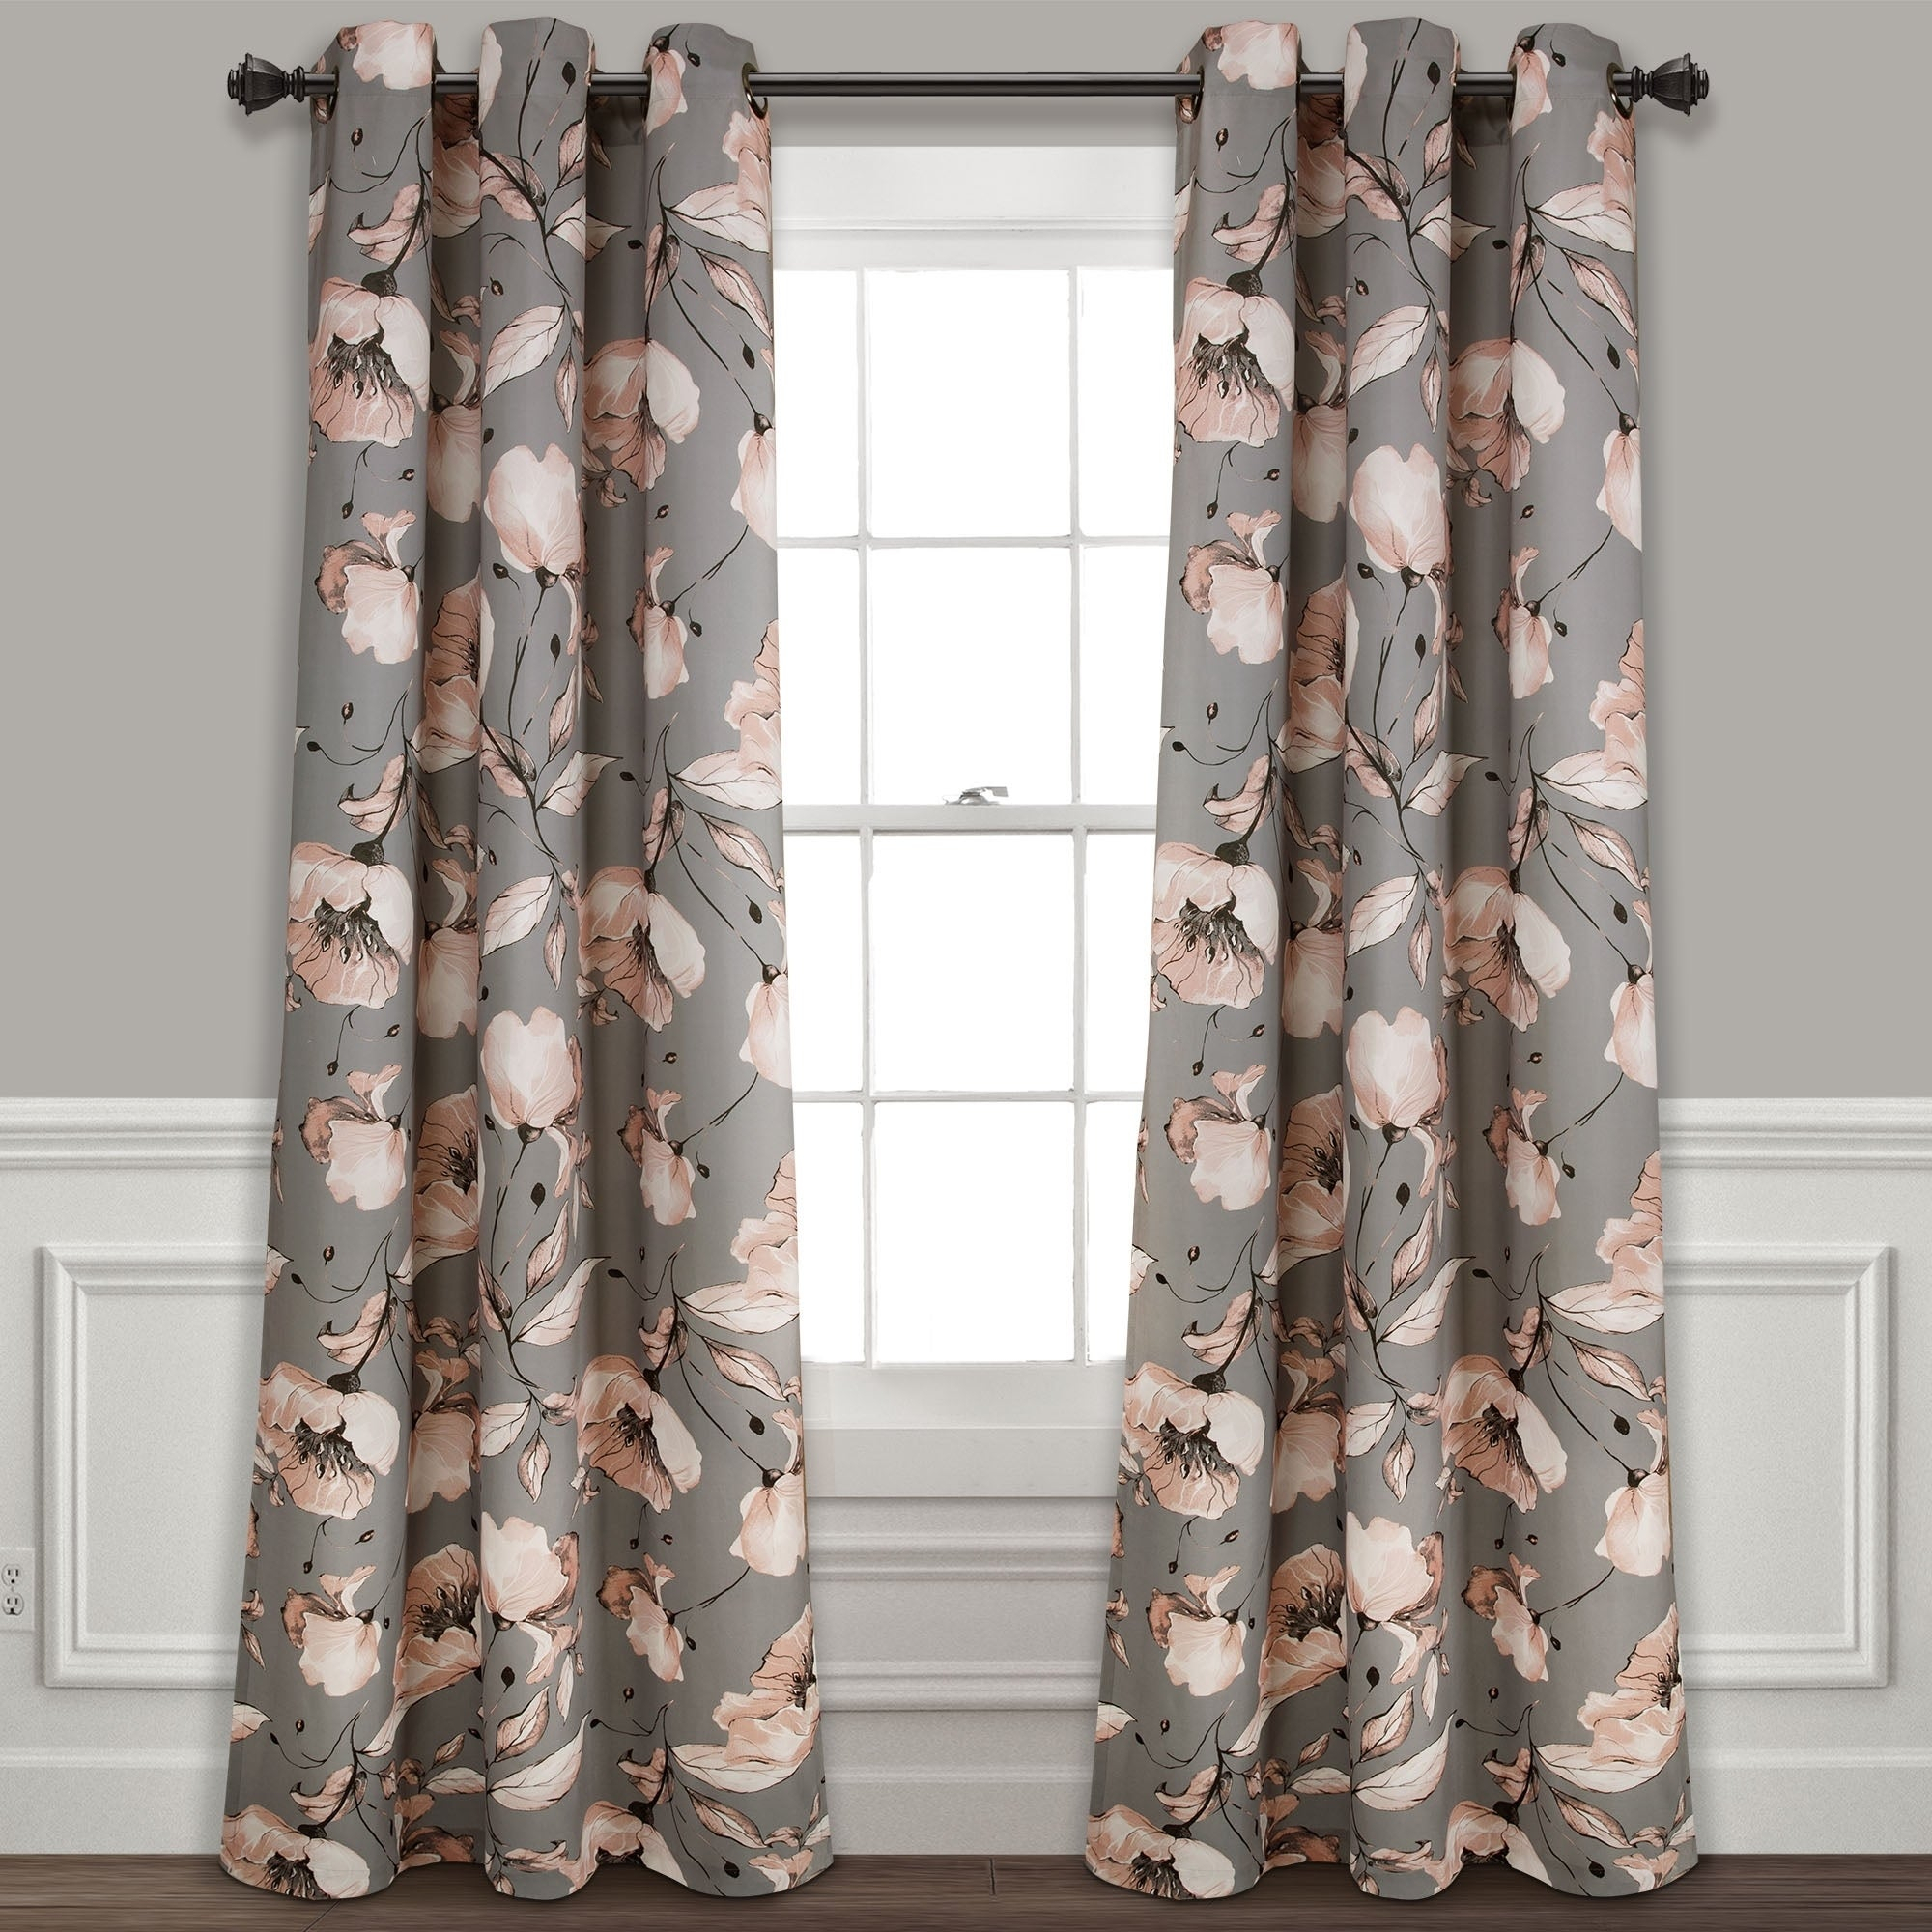 Silver Orchid Lane Blackout Window Curtain Panel Pair Regarding Gray Barn Dogwood Floral Curtain Panel Pairs (View 14 of 20)